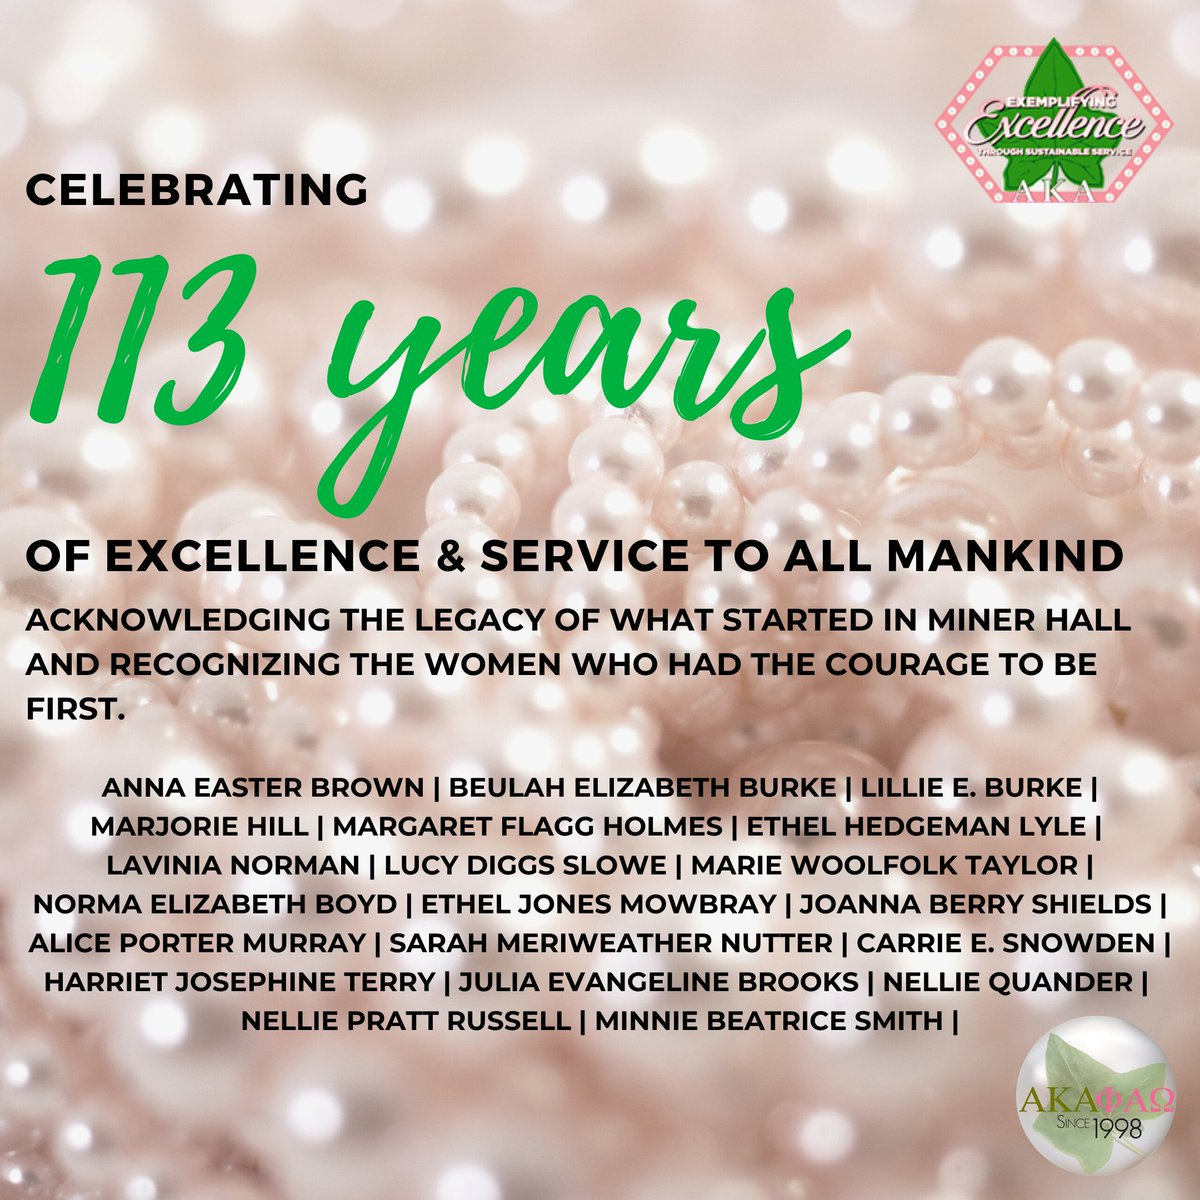 Happy Founders' Day to Alpha Kappa Alpha Sorority, Incorporated! Celebrating 113 Years of Excellence & Service to All Mankind. We pay homage to our Founders and salute their strength and courage to be women of firsts. #akapao #AKA1908 #J15 #thecouragetobefirst